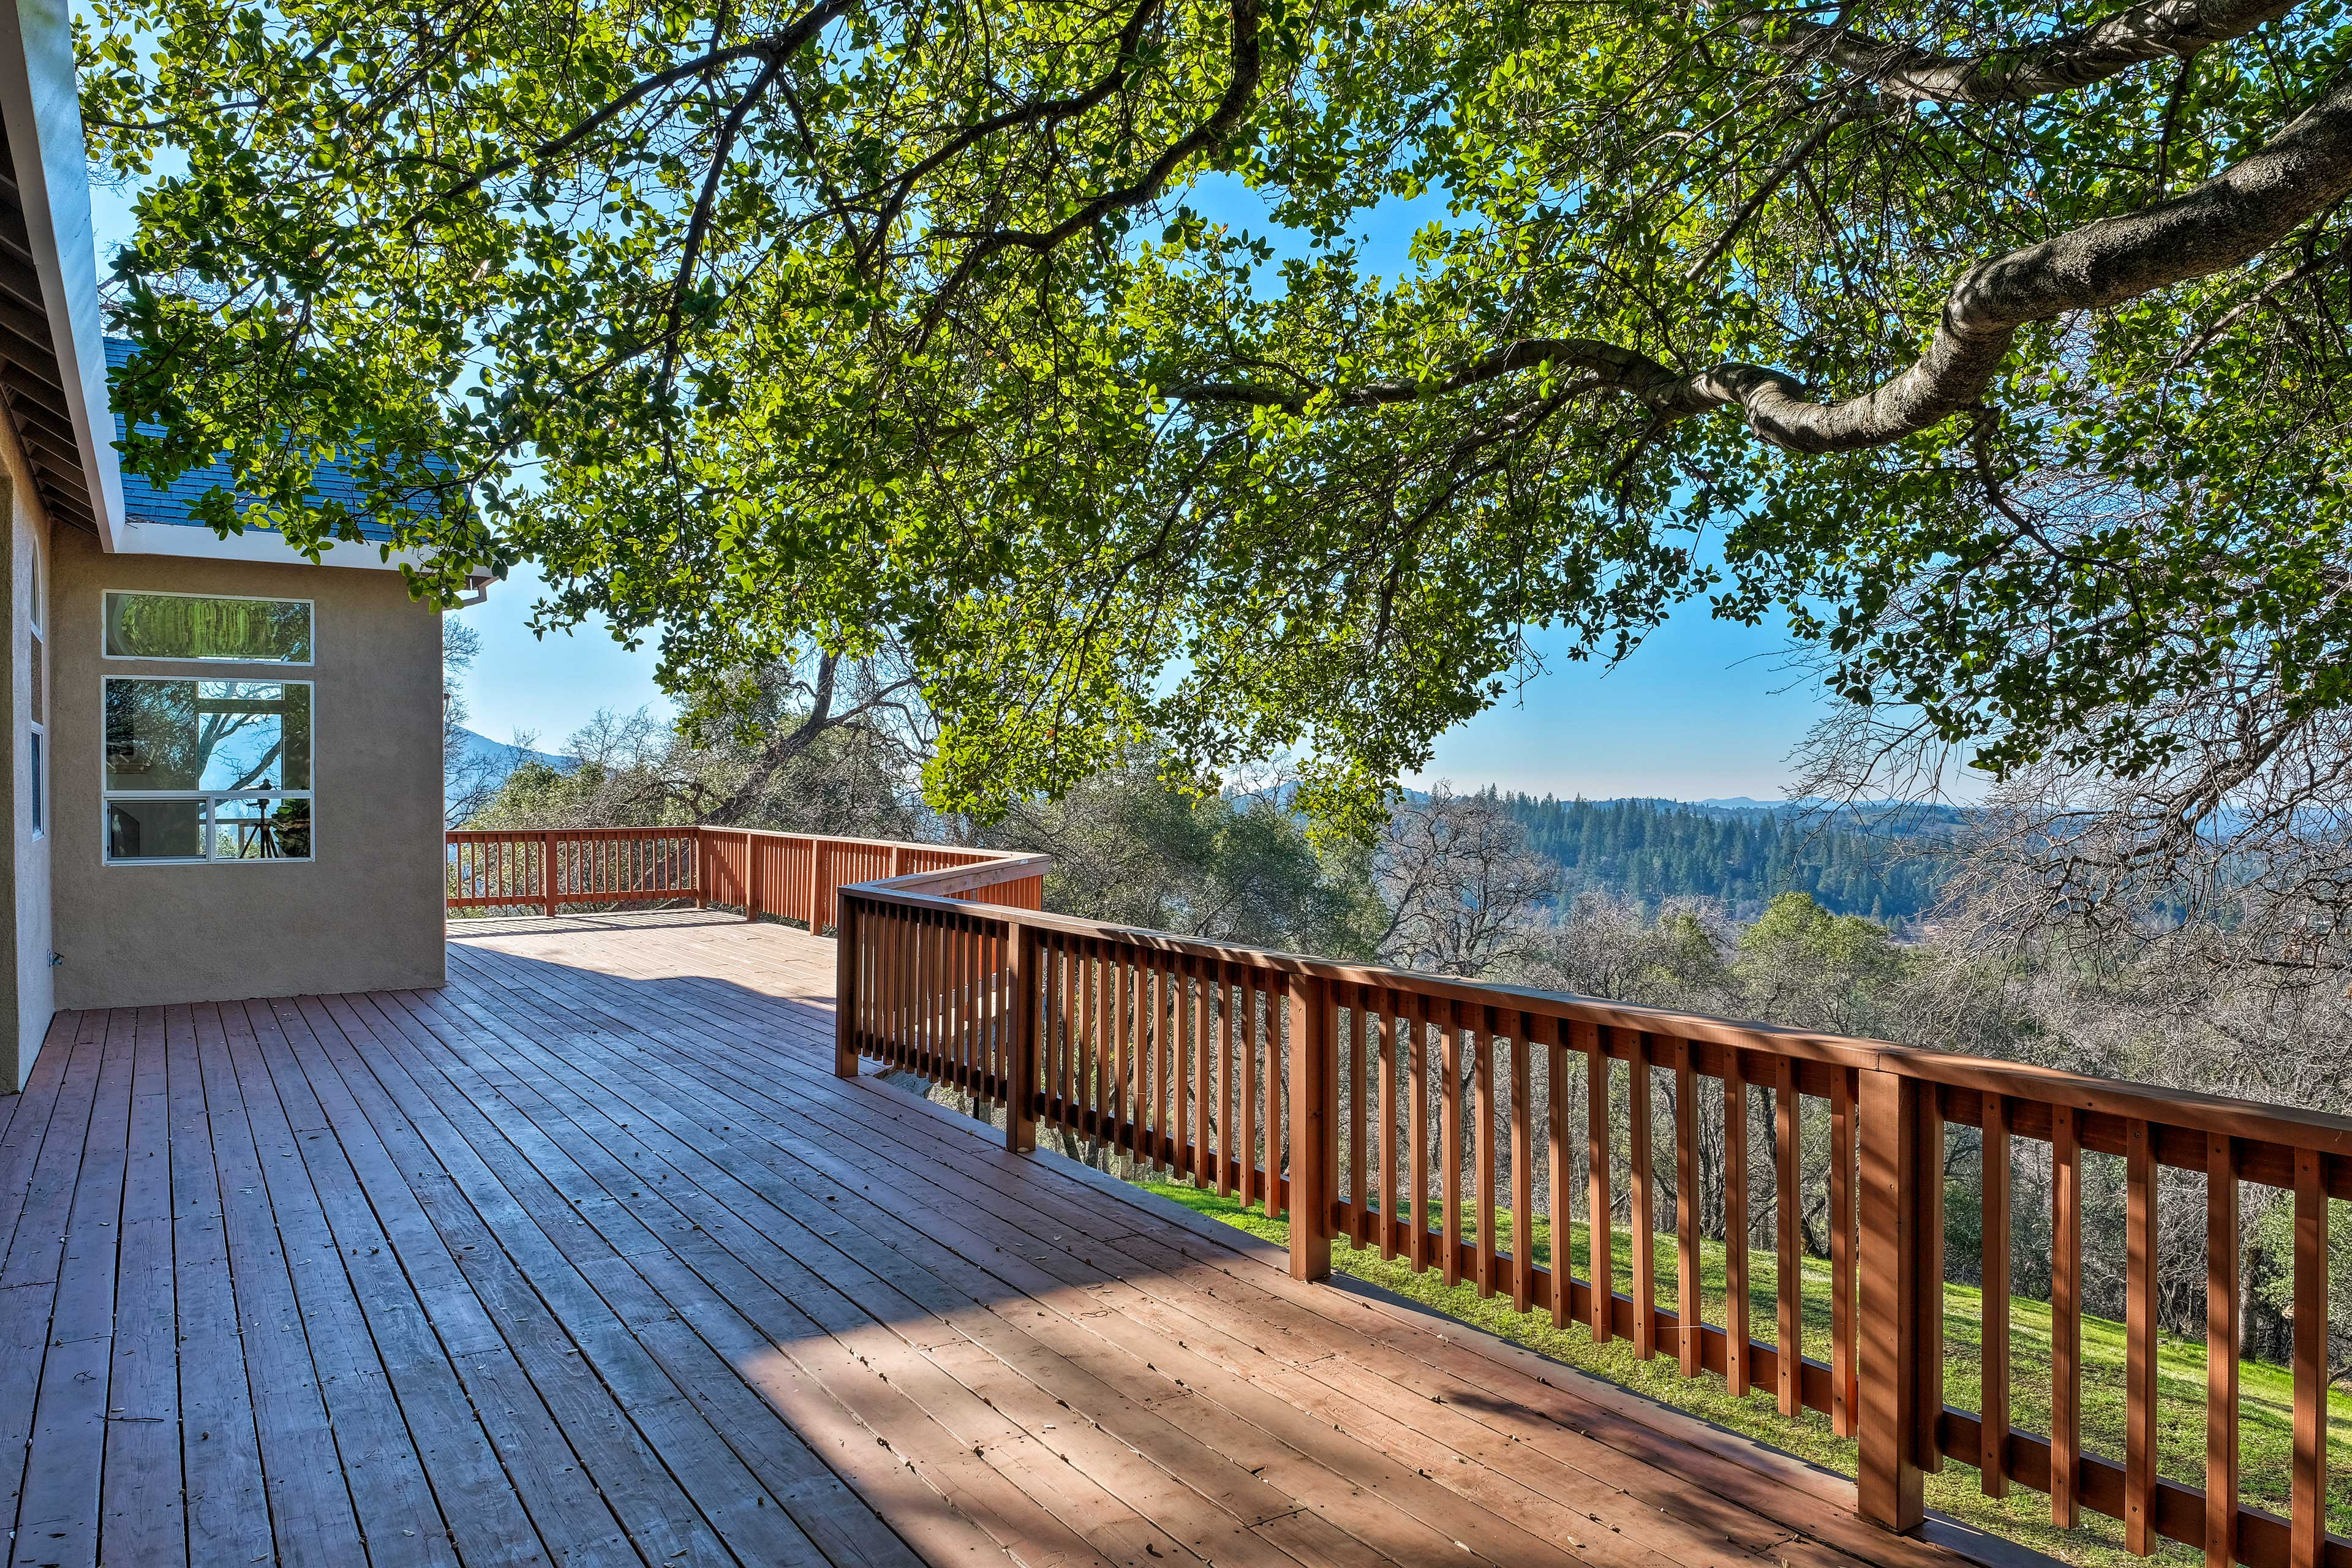 Admire scenic sunsets from the wraparound deck.